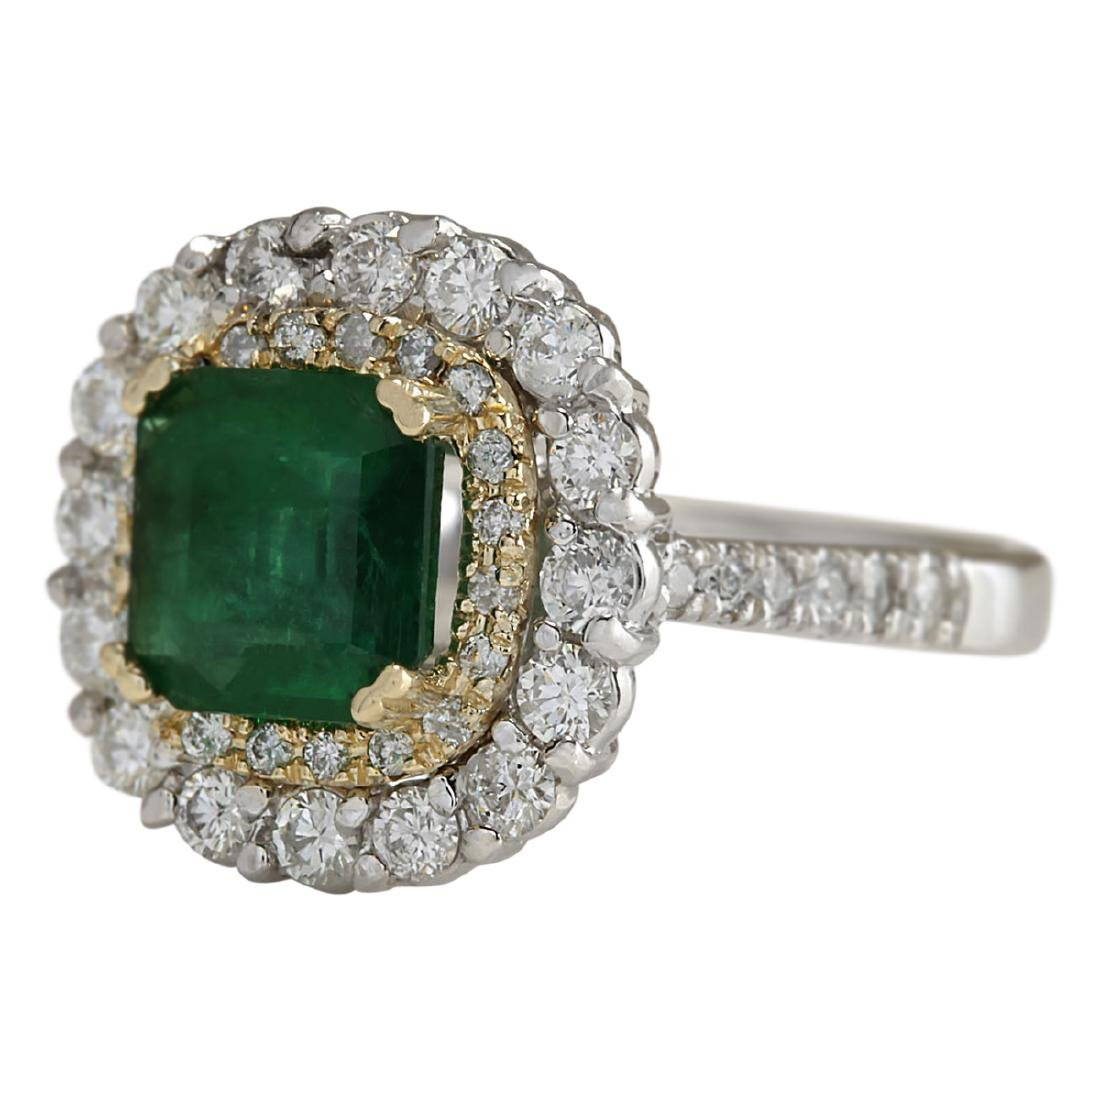 2.88 CTW Natural Emerald And Diamond Ring 18K Solid - 2